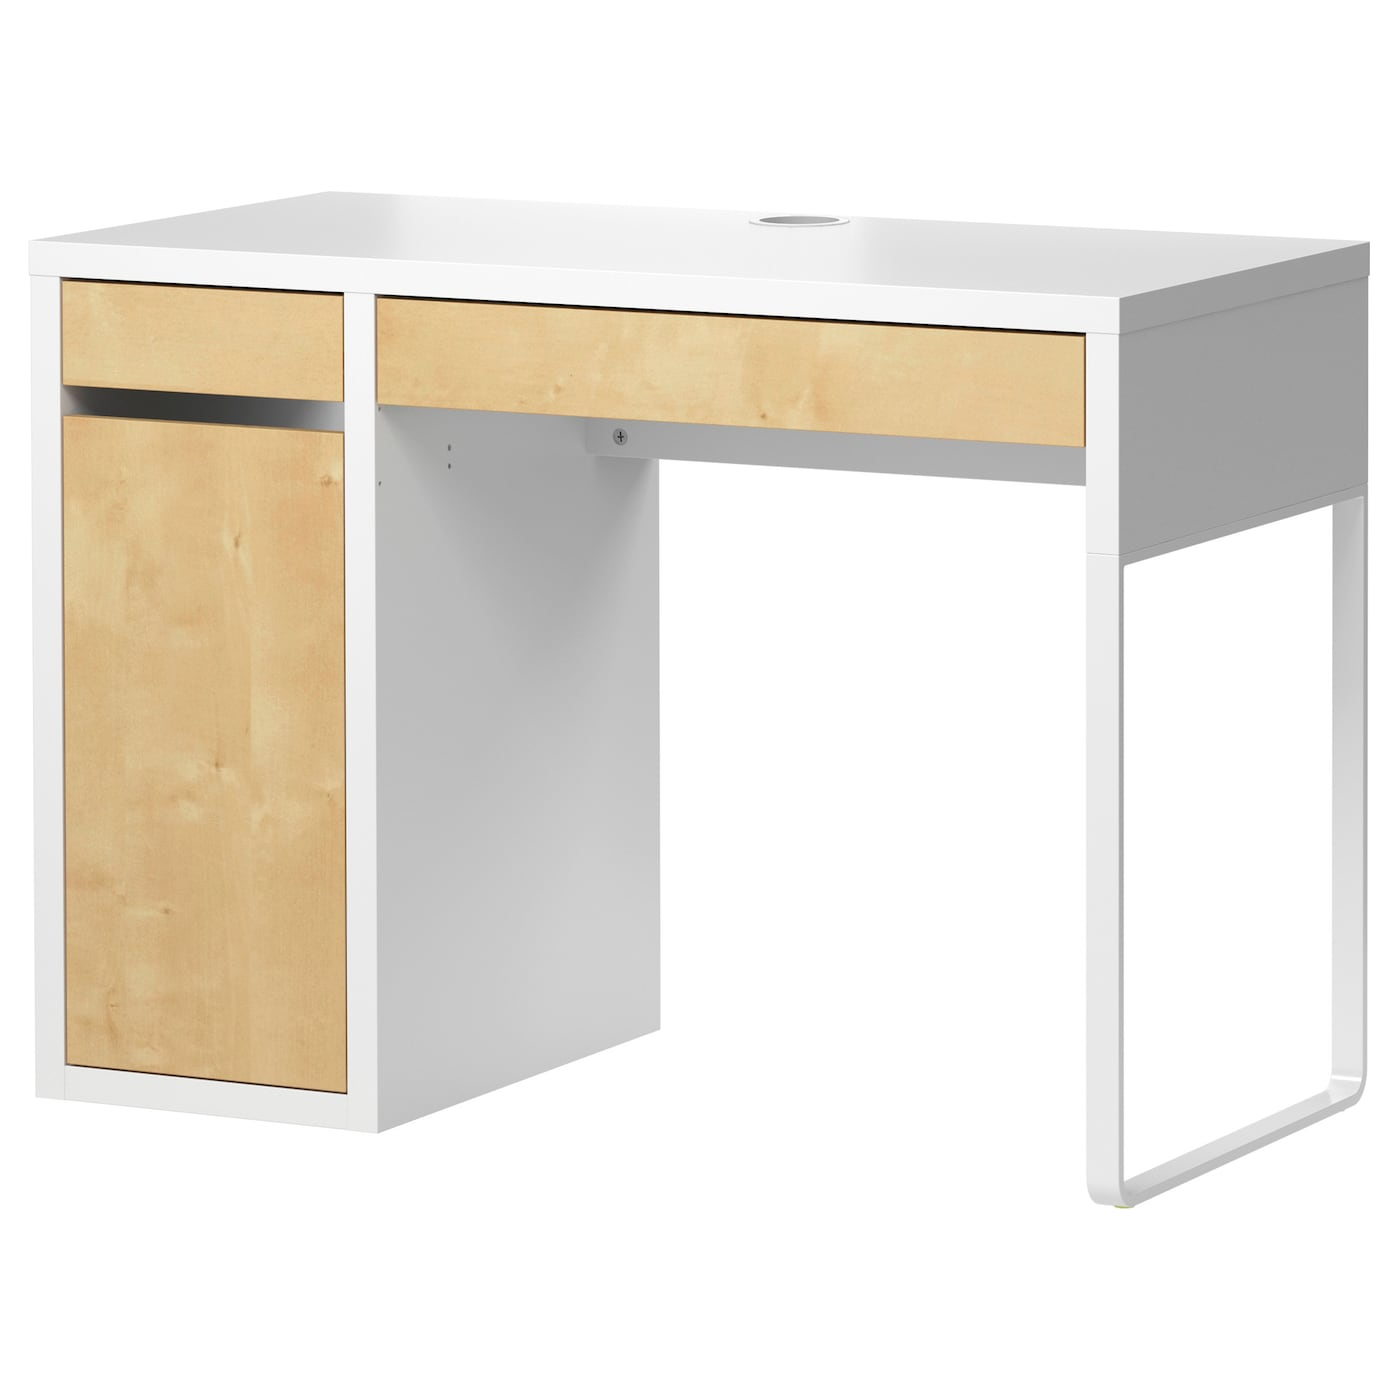 micke bureau wit berkenpatroon 105x50 cm ikea. Black Bedroom Furniture Sets. Home Design Ideas